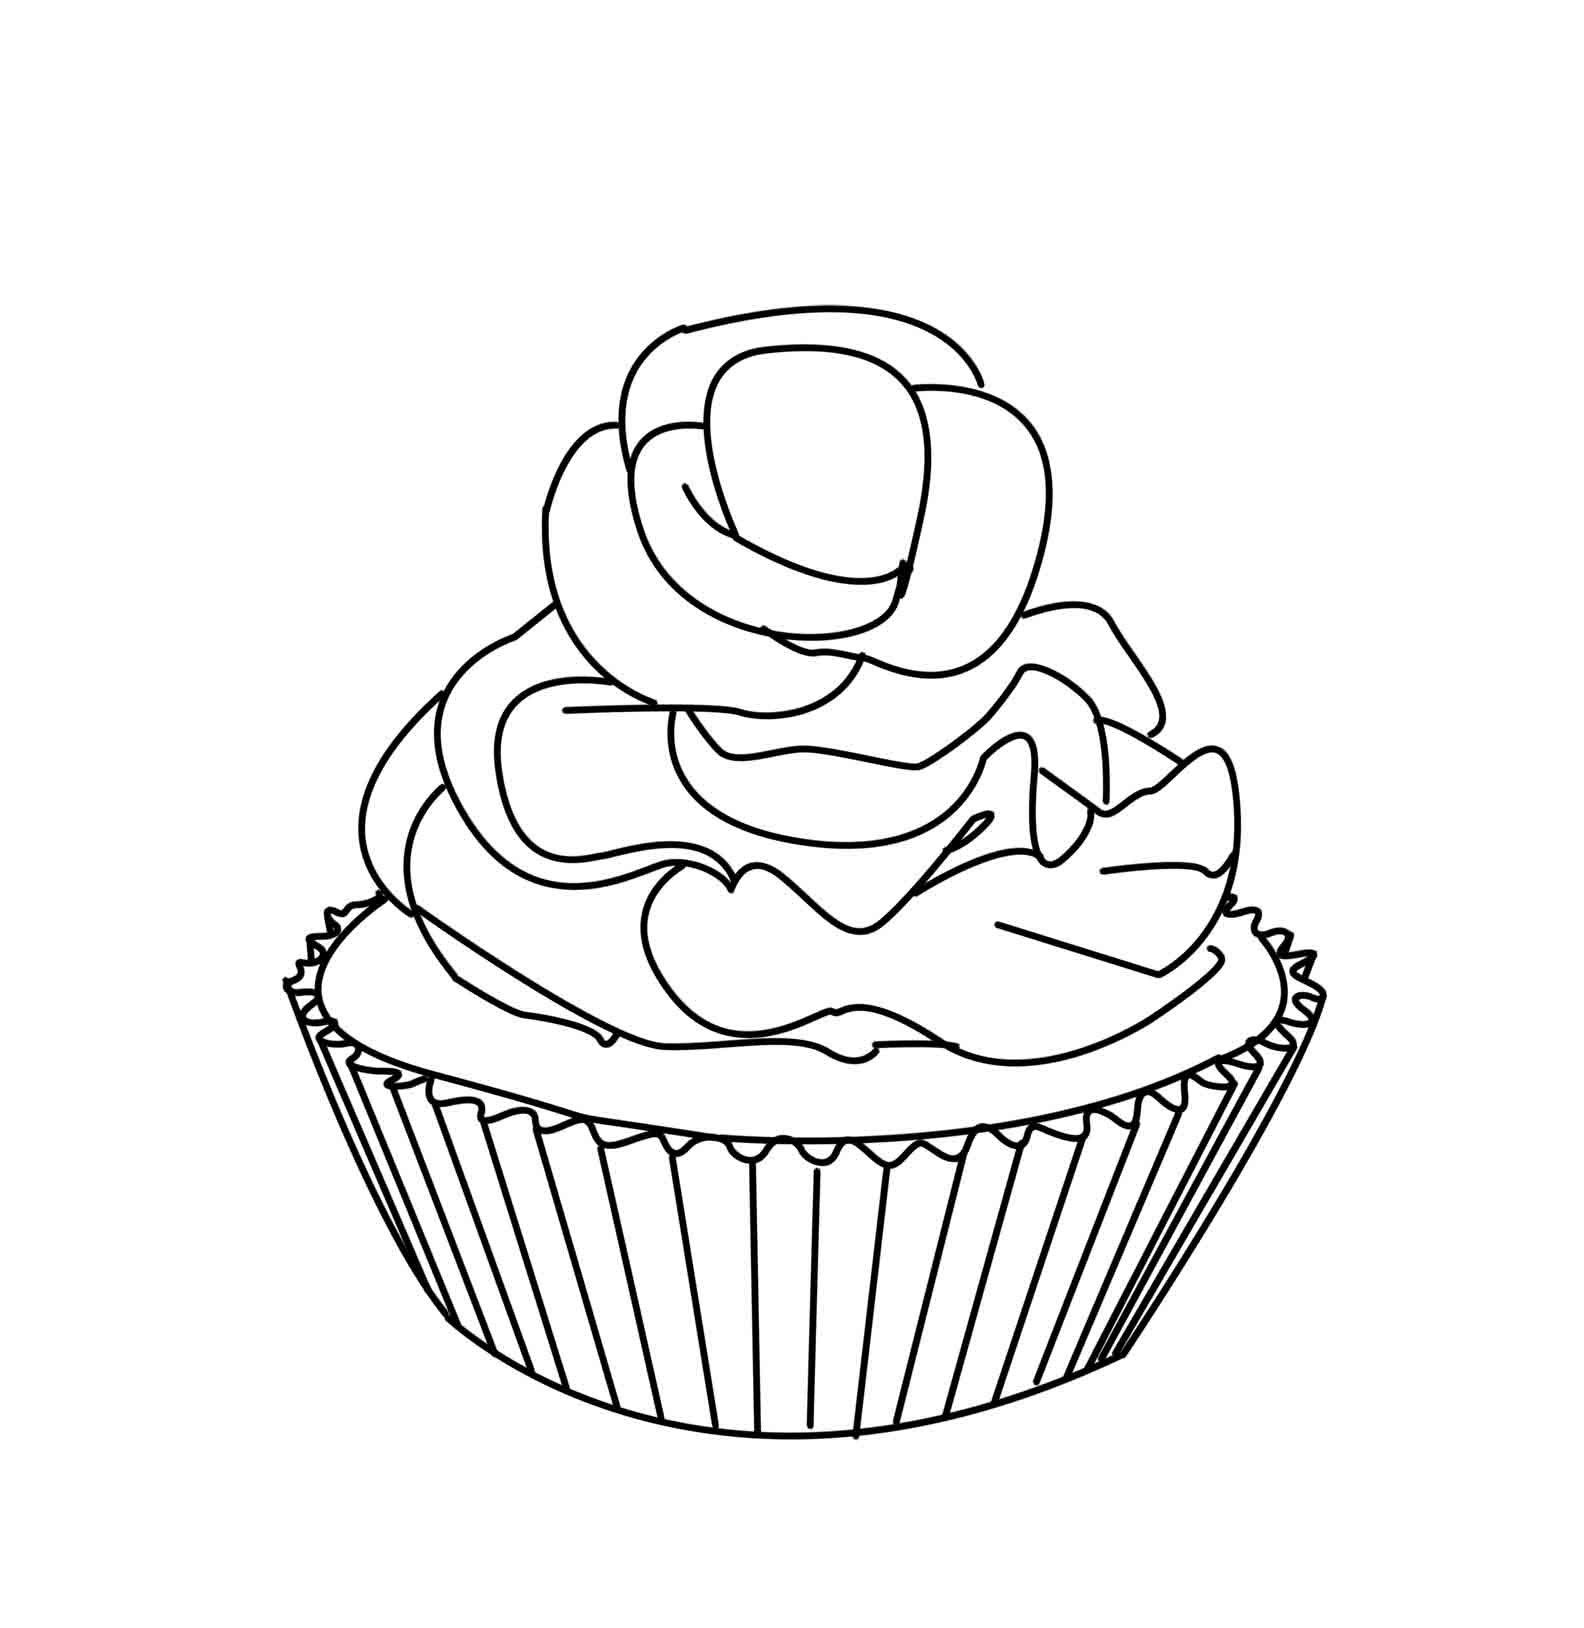 leaf coloring pages images cupcake - photo#14